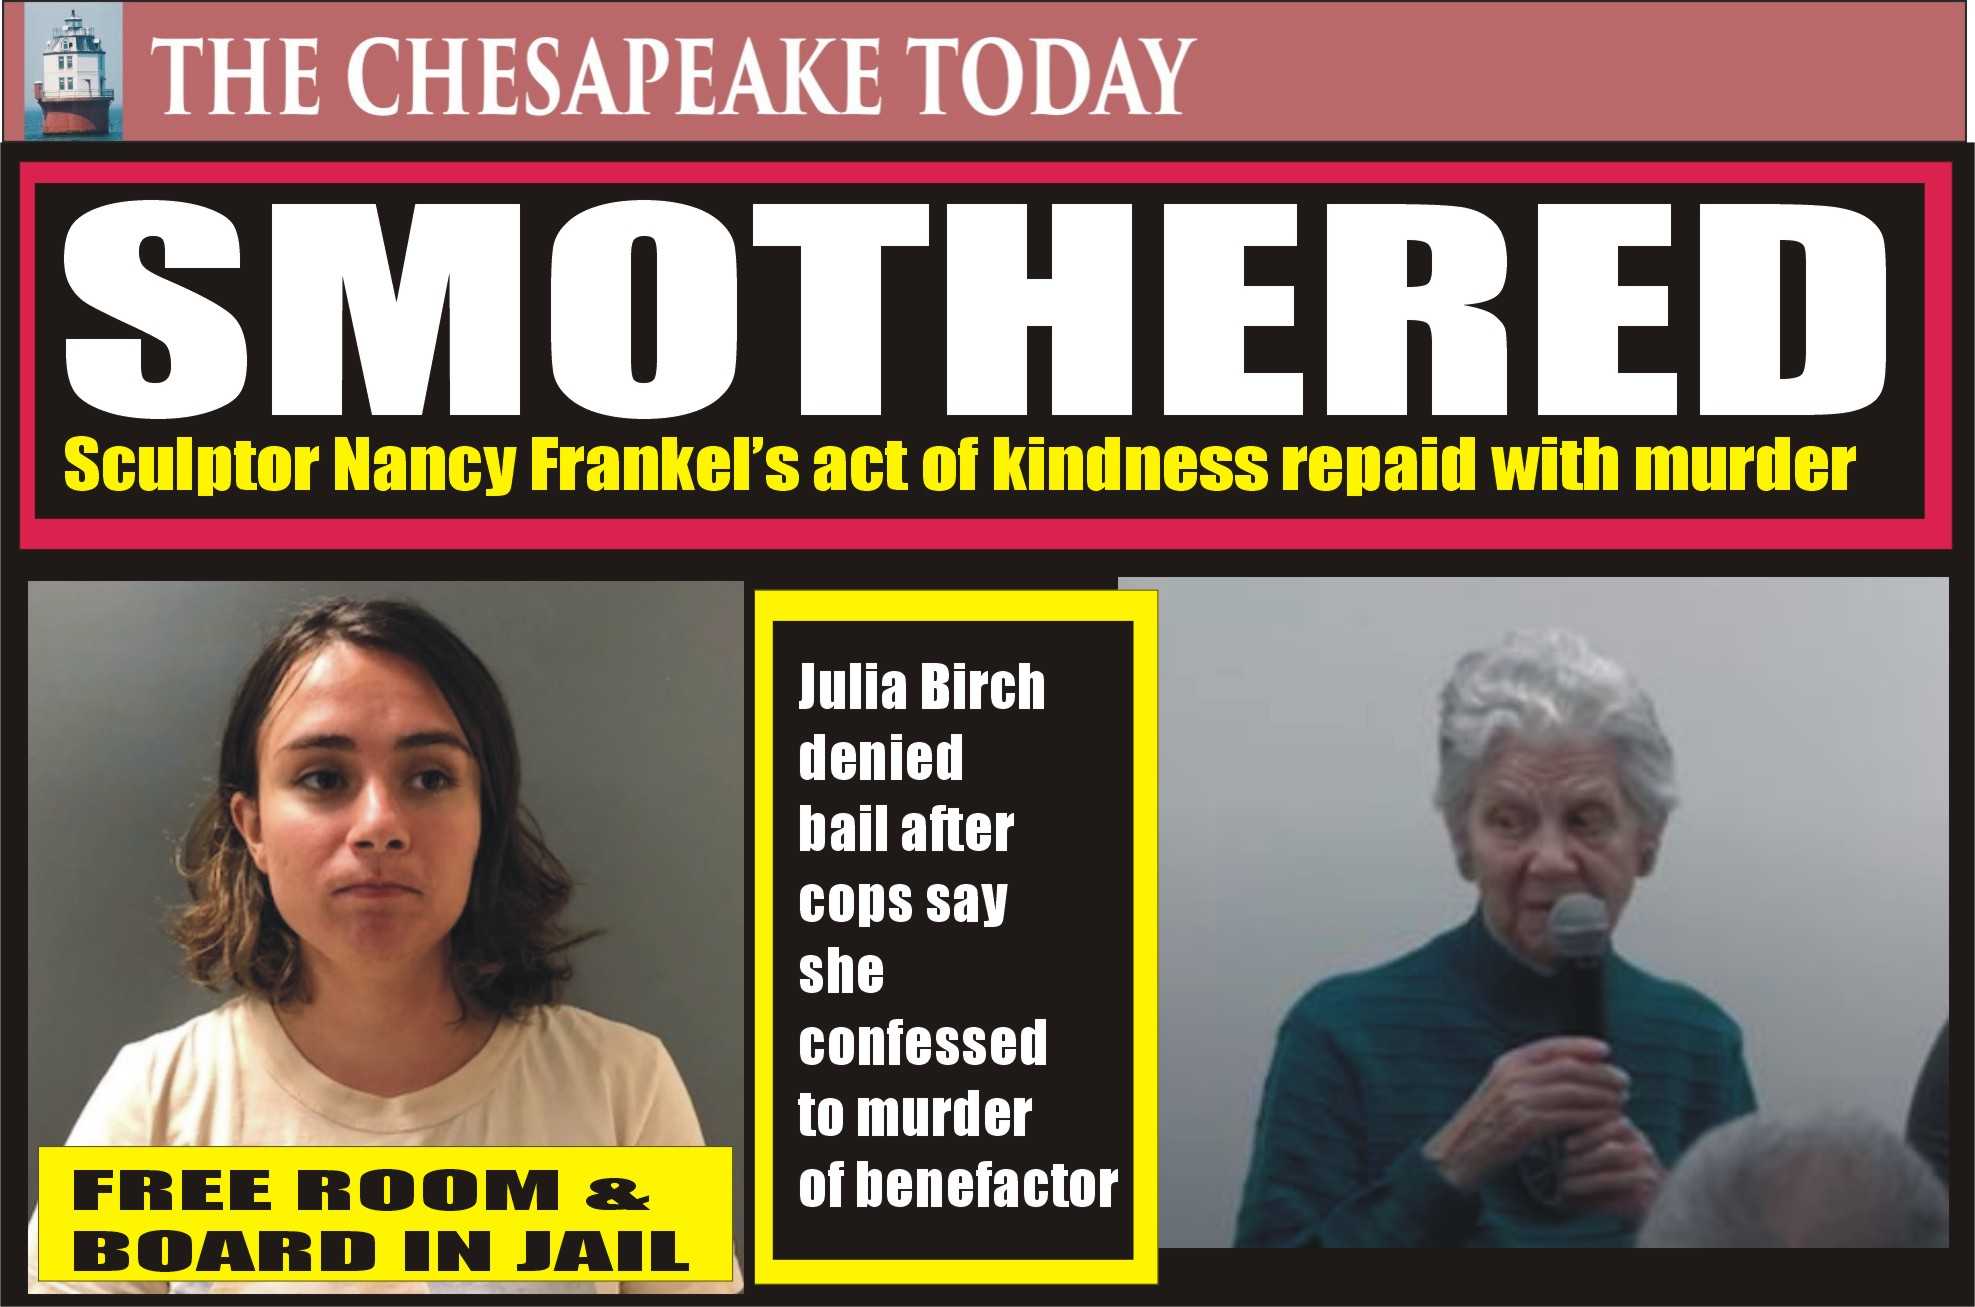 MURDER USA: Julia Birch suffocated elderly sculptor who took her into her home; police say she has confessed twice